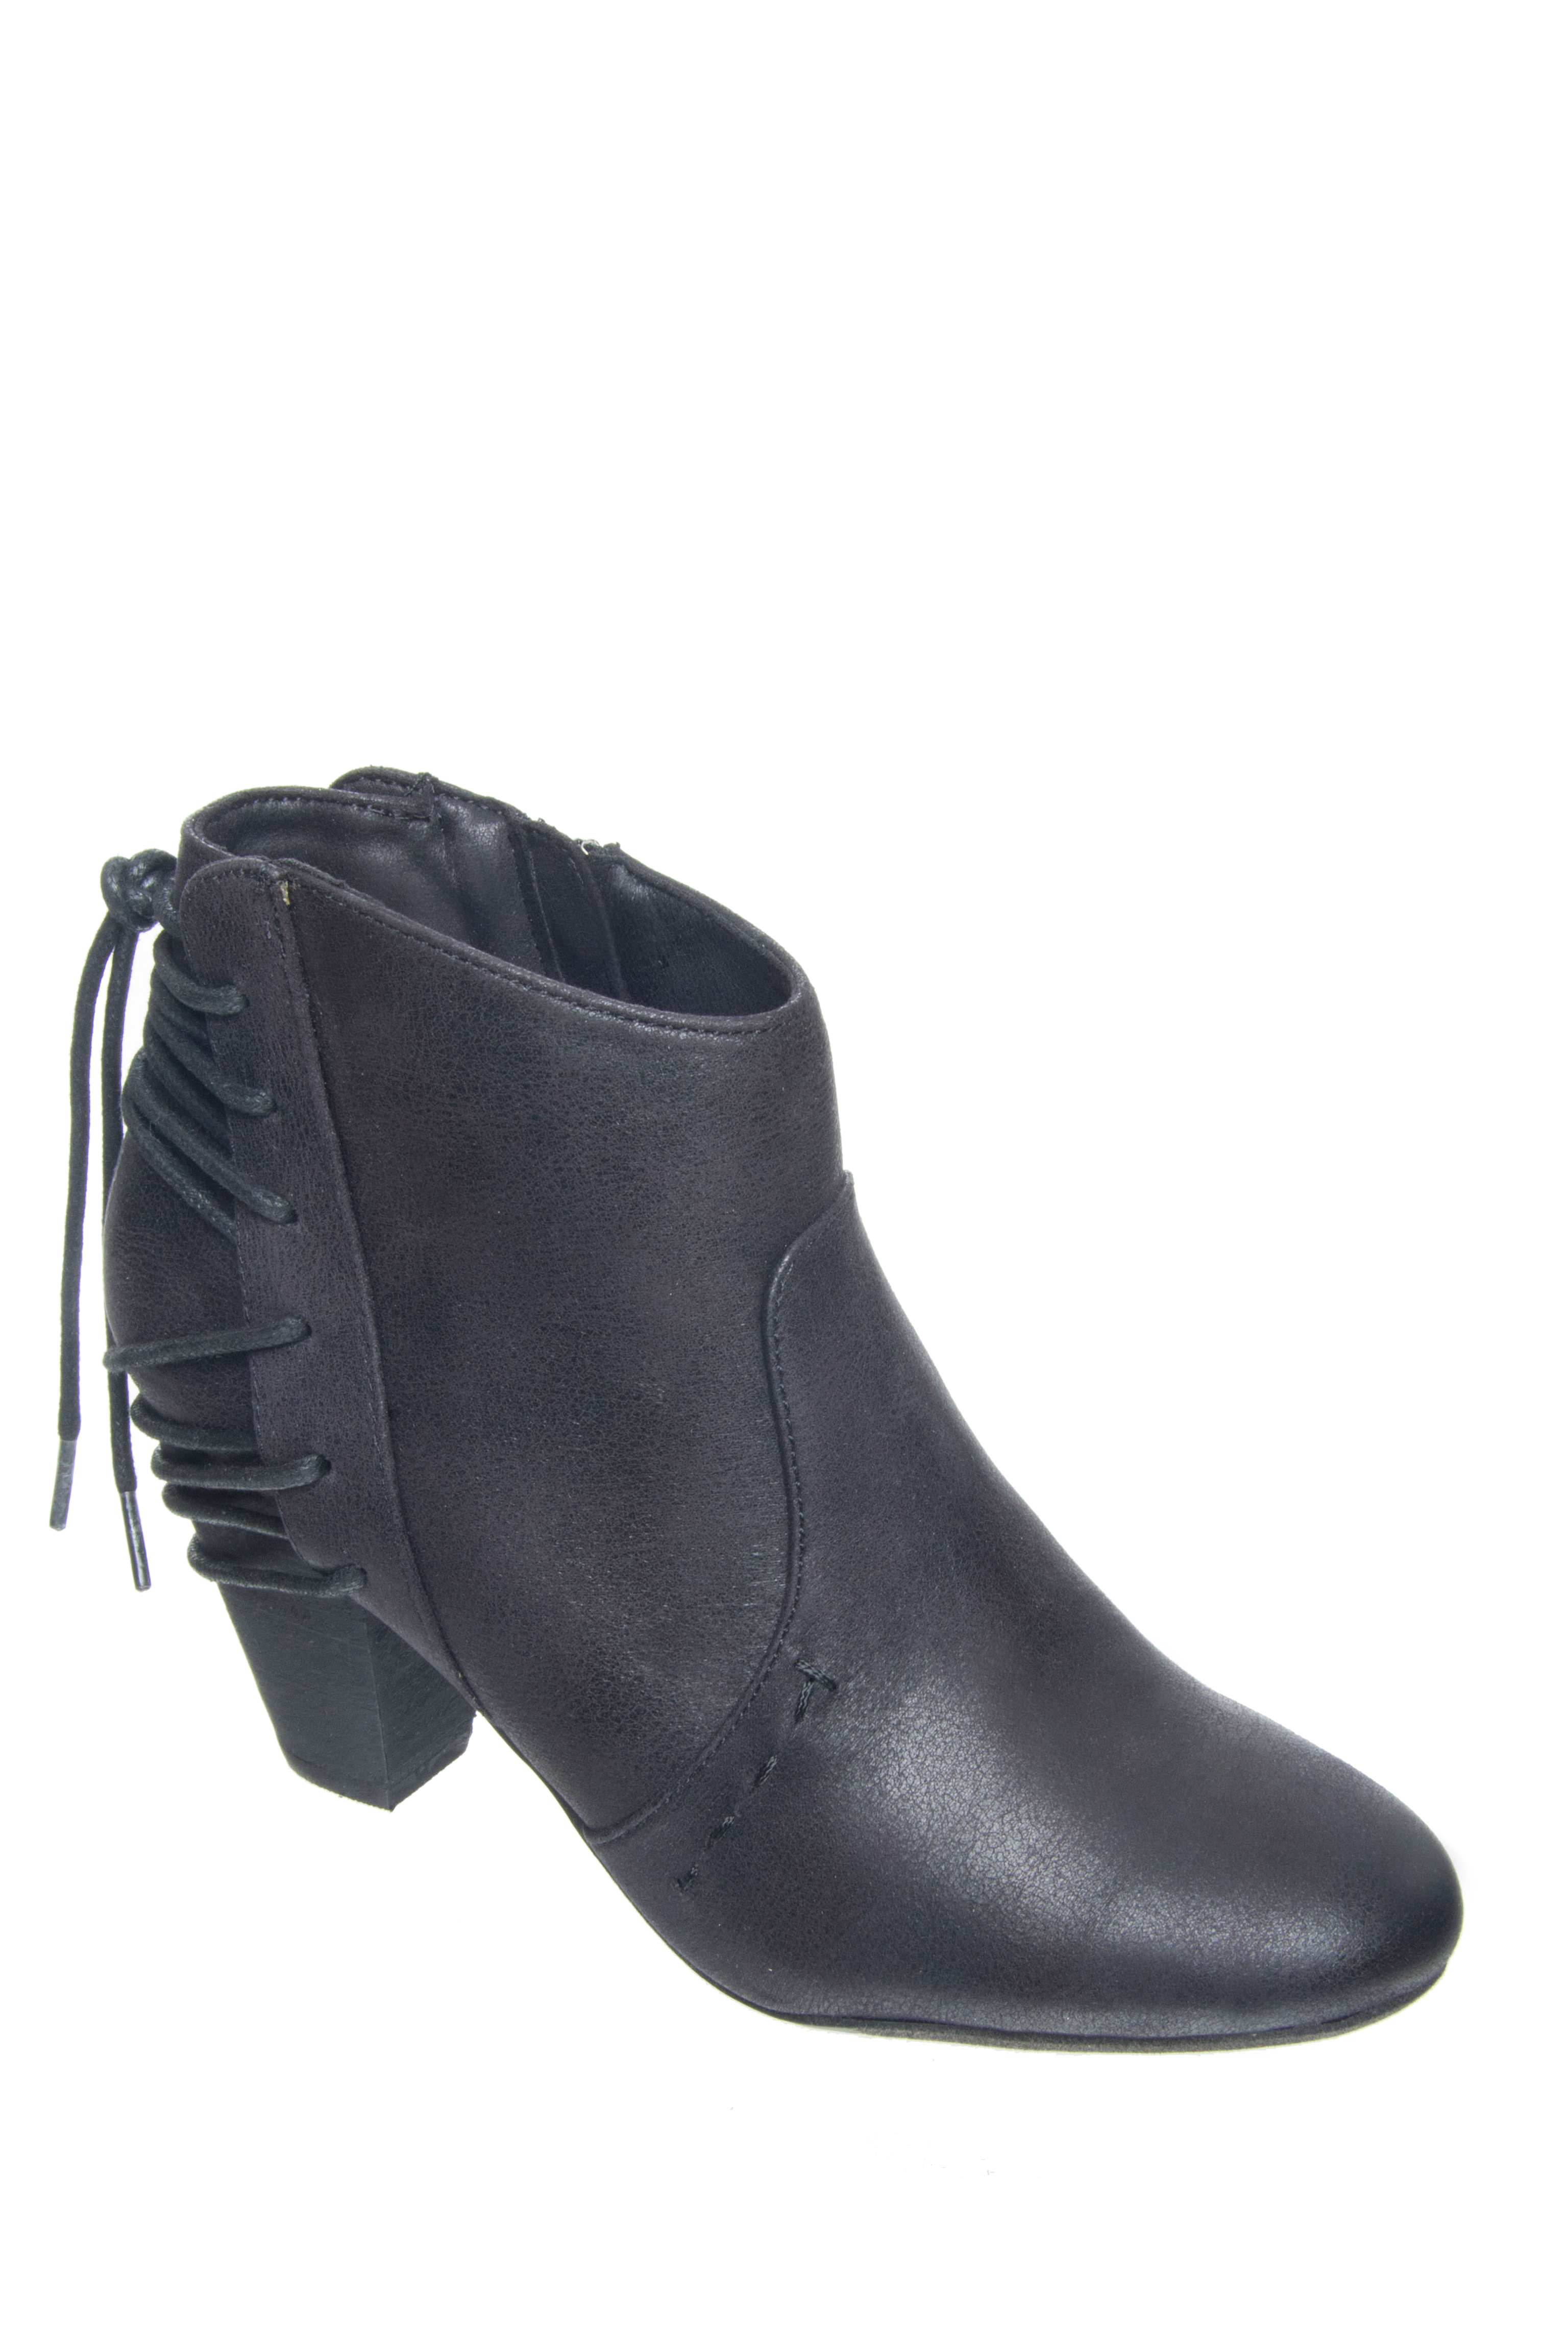 Report Milla Back Lace Booties - Black